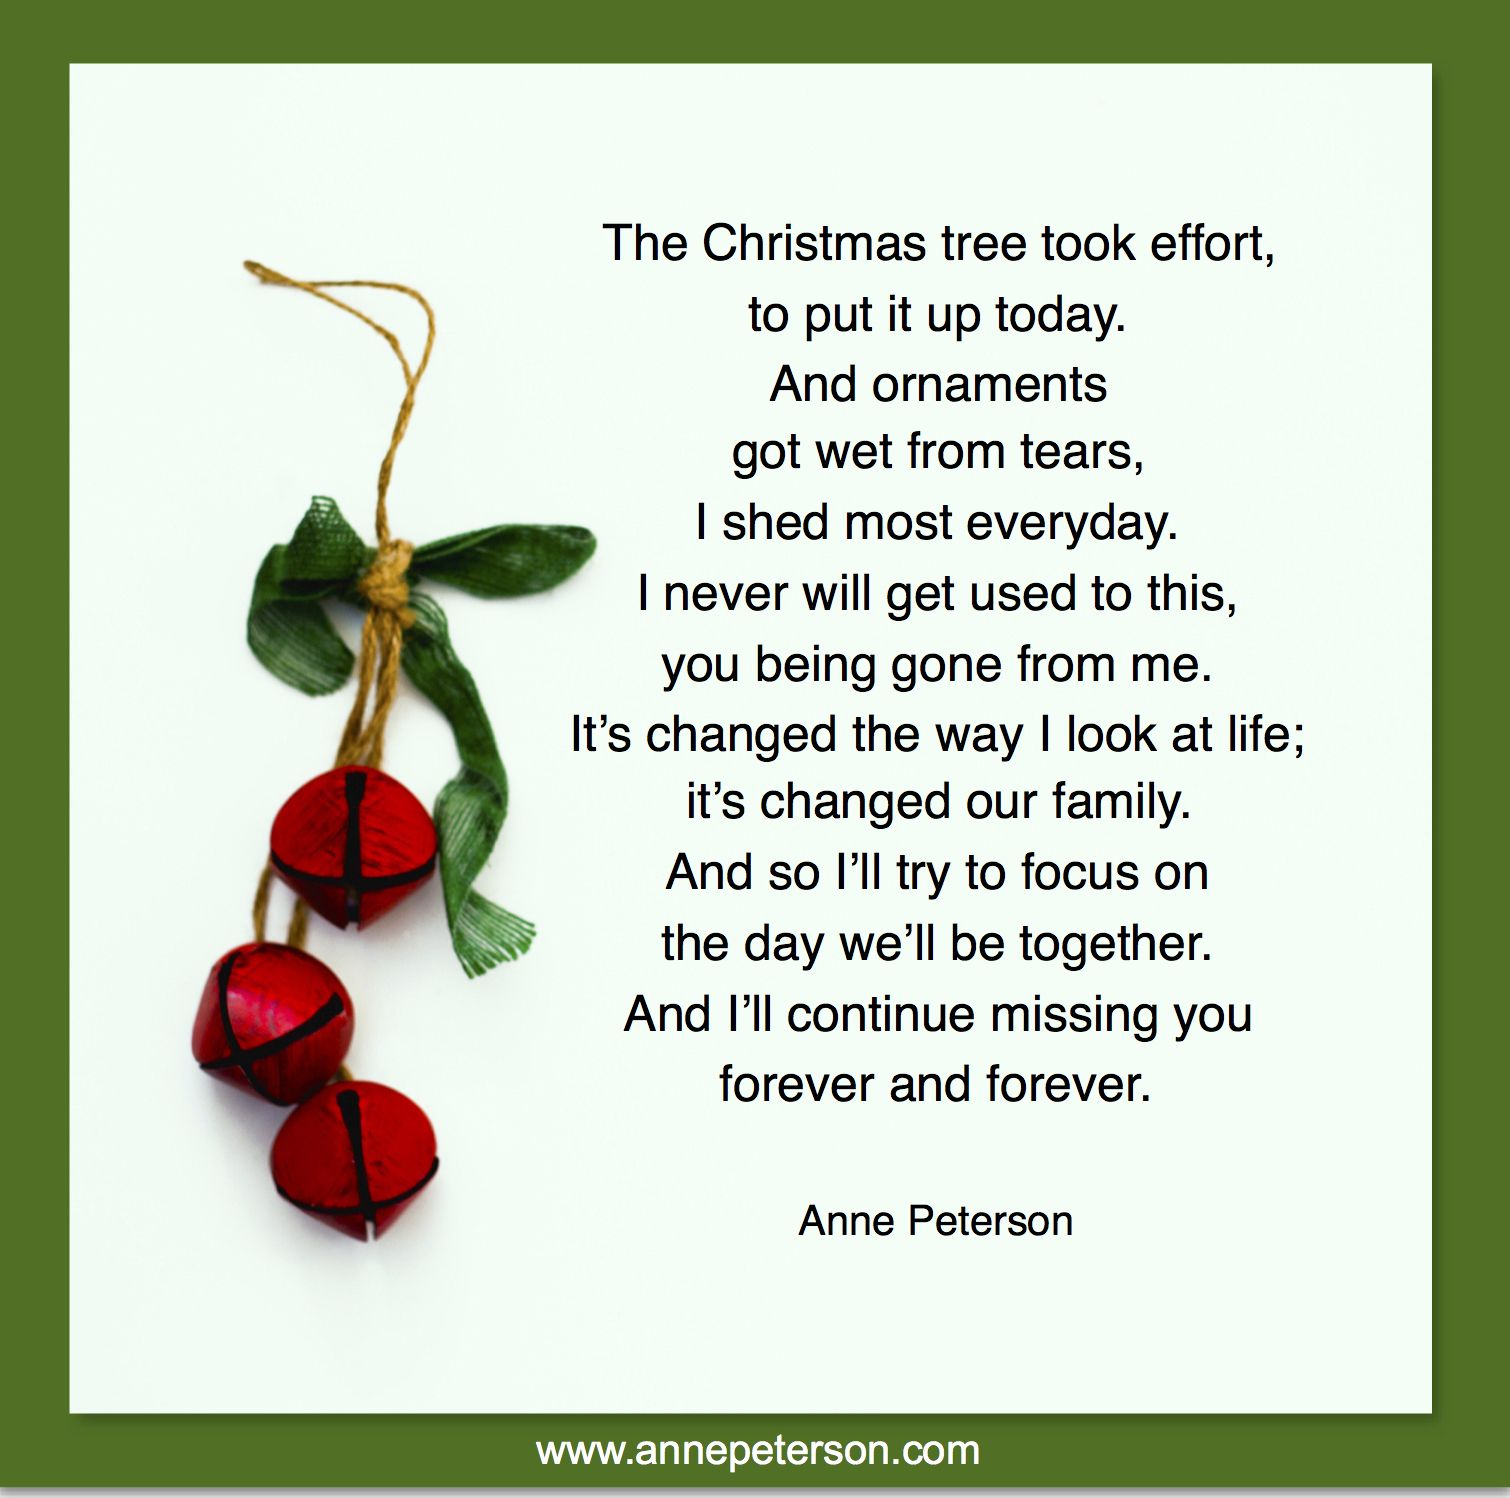 Grief, Missing Loved Ones At Christmas, Loss, Death